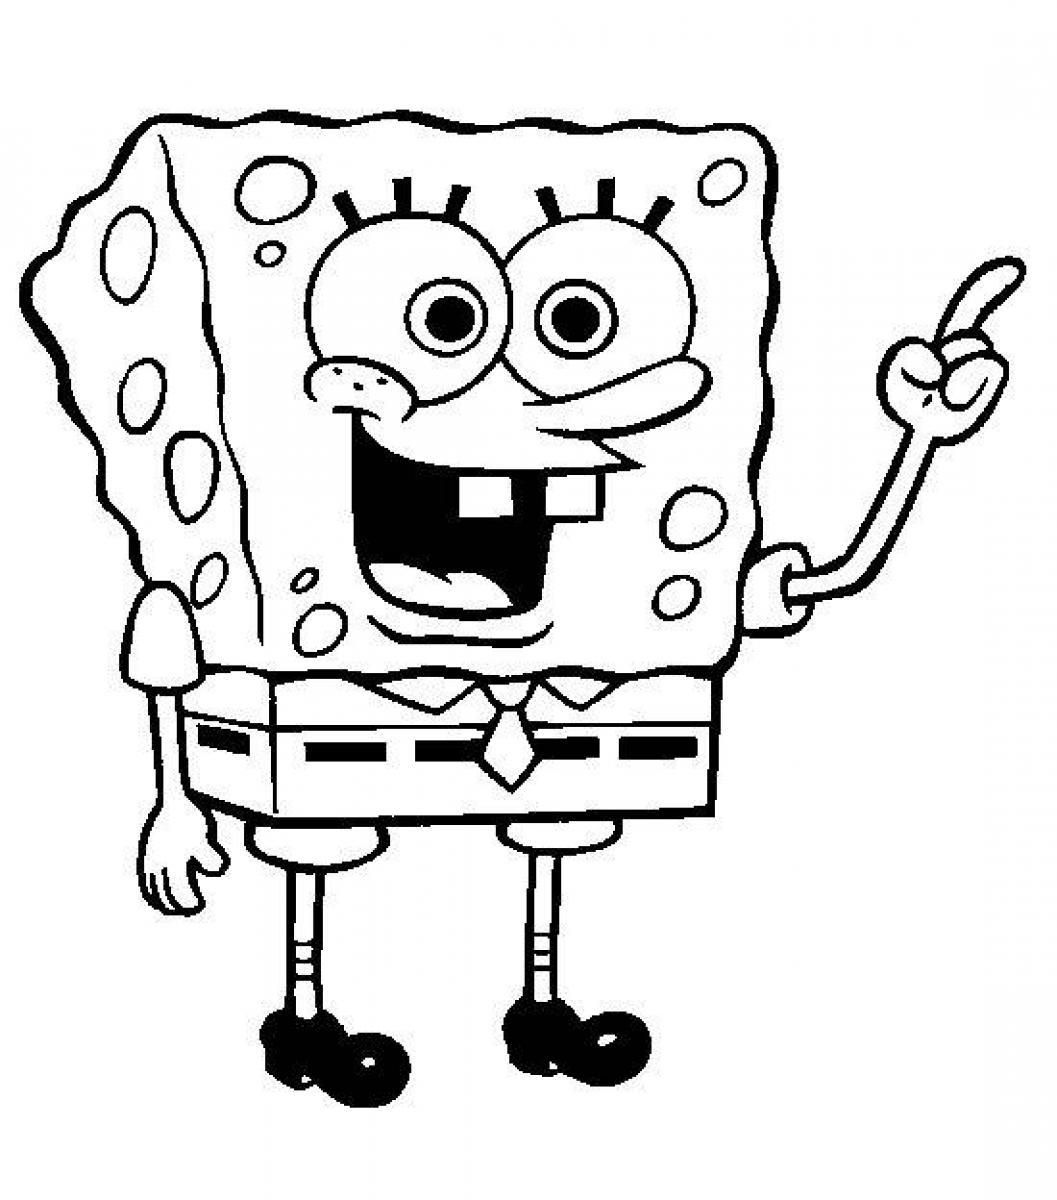 Free Spongebob Squarepants Coloring Pages With A Picture Of ...